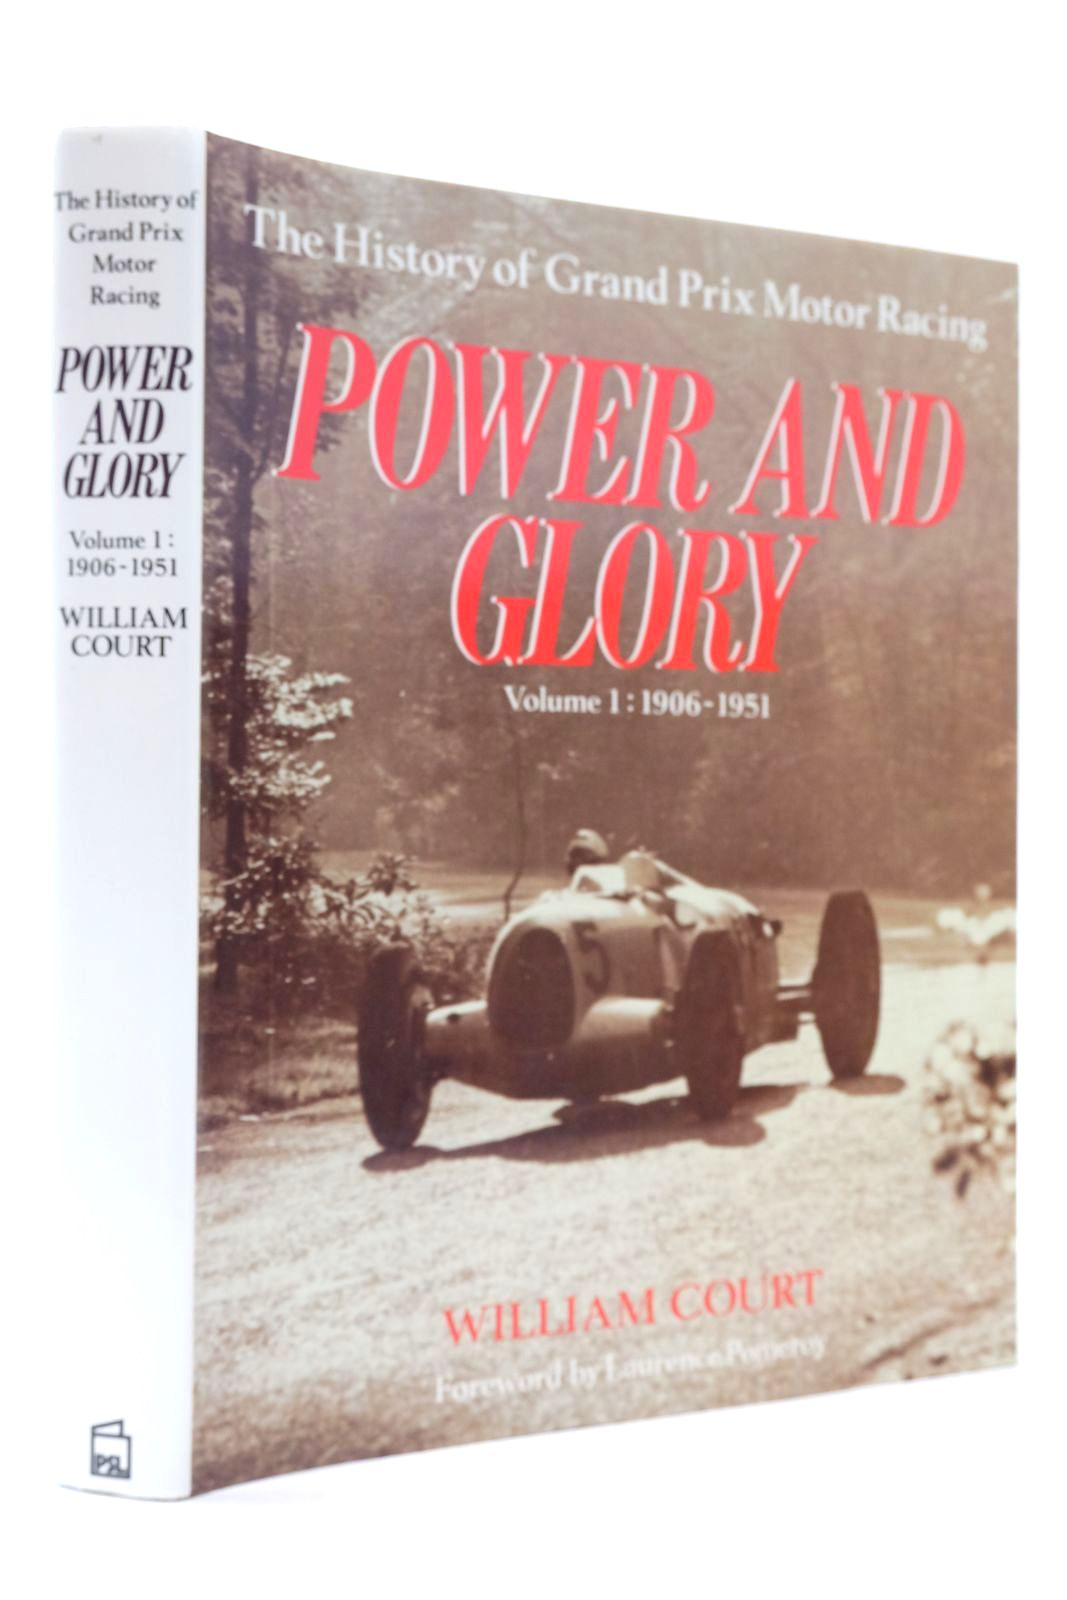 Photo of POWER AND GLORY VOLUME 1 1906-1951 written by Court, William published by Patrick Stephens Limited (STOCK CODE: 2133102)  for sale by Stella & Rose's Books